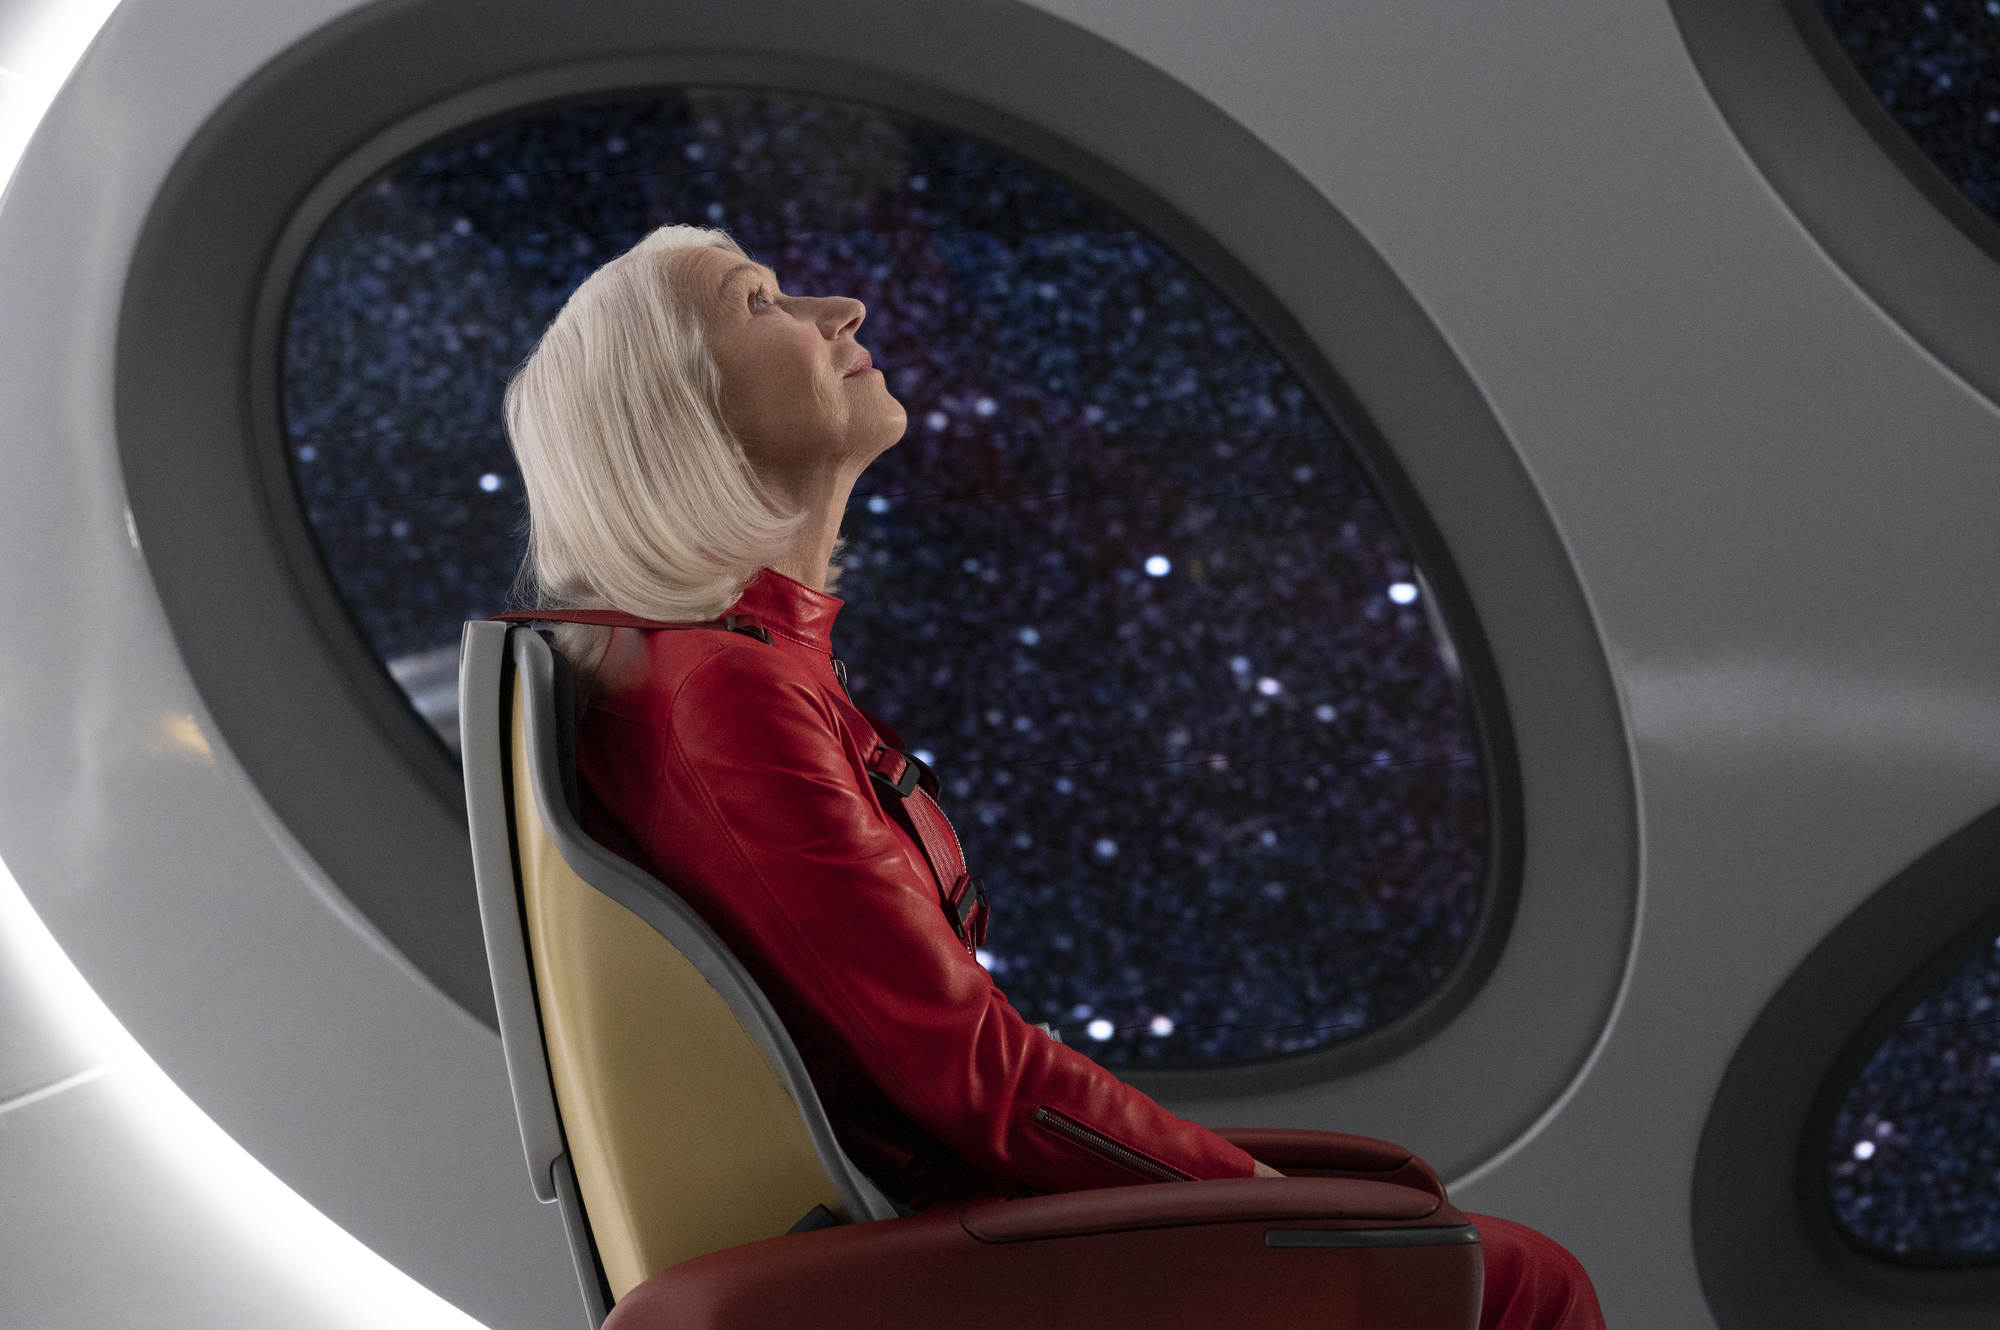 Helen Mirren, in a red coverall, sits in a futuristic silver chair in front of a portal looking out into space in Solos